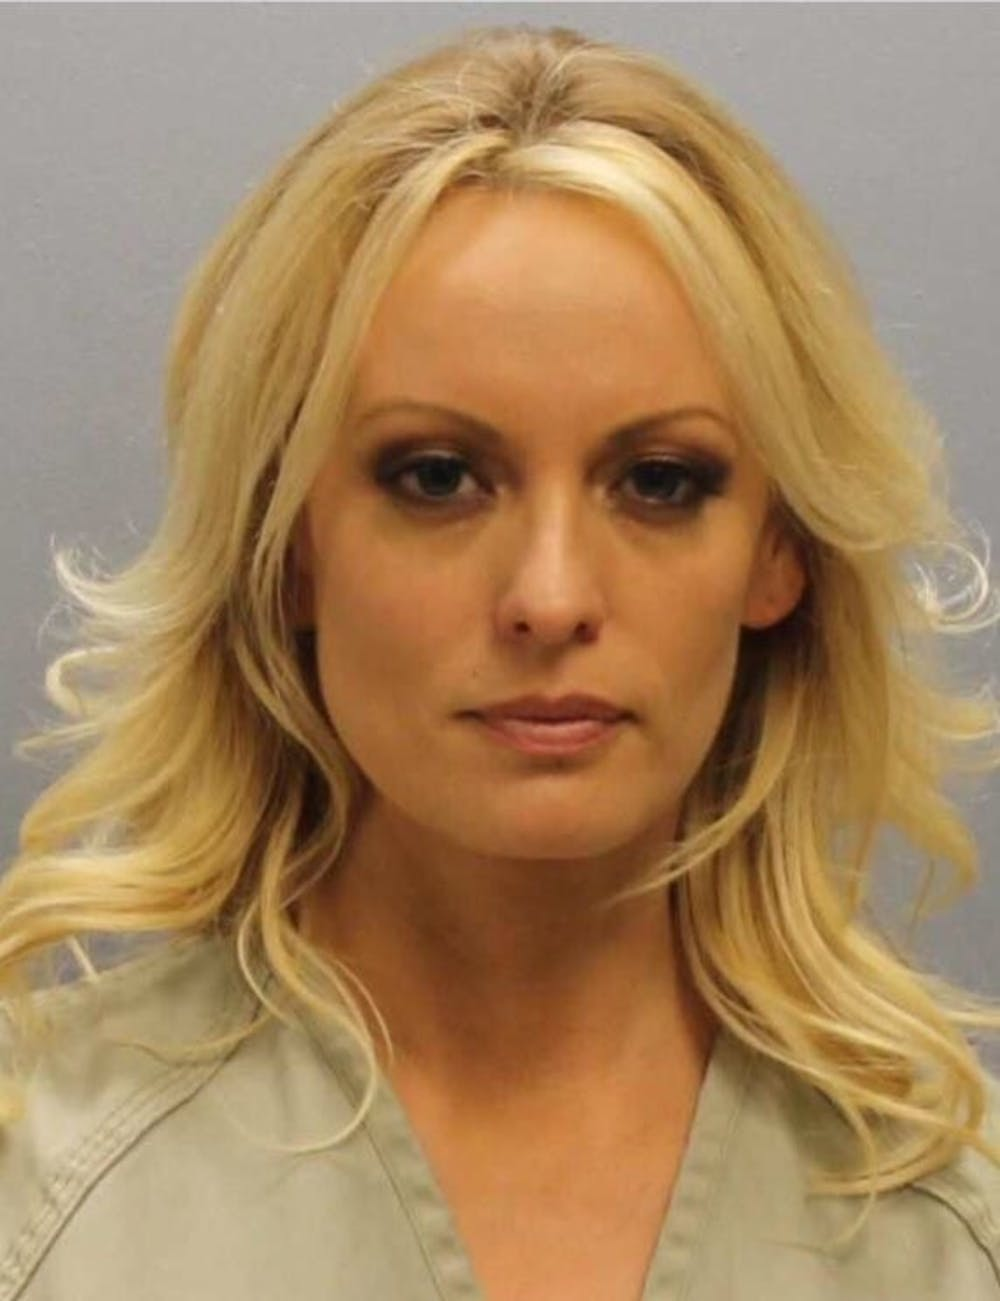 Charges against Stormy Daniels dropped following arrest at Columbus strip club